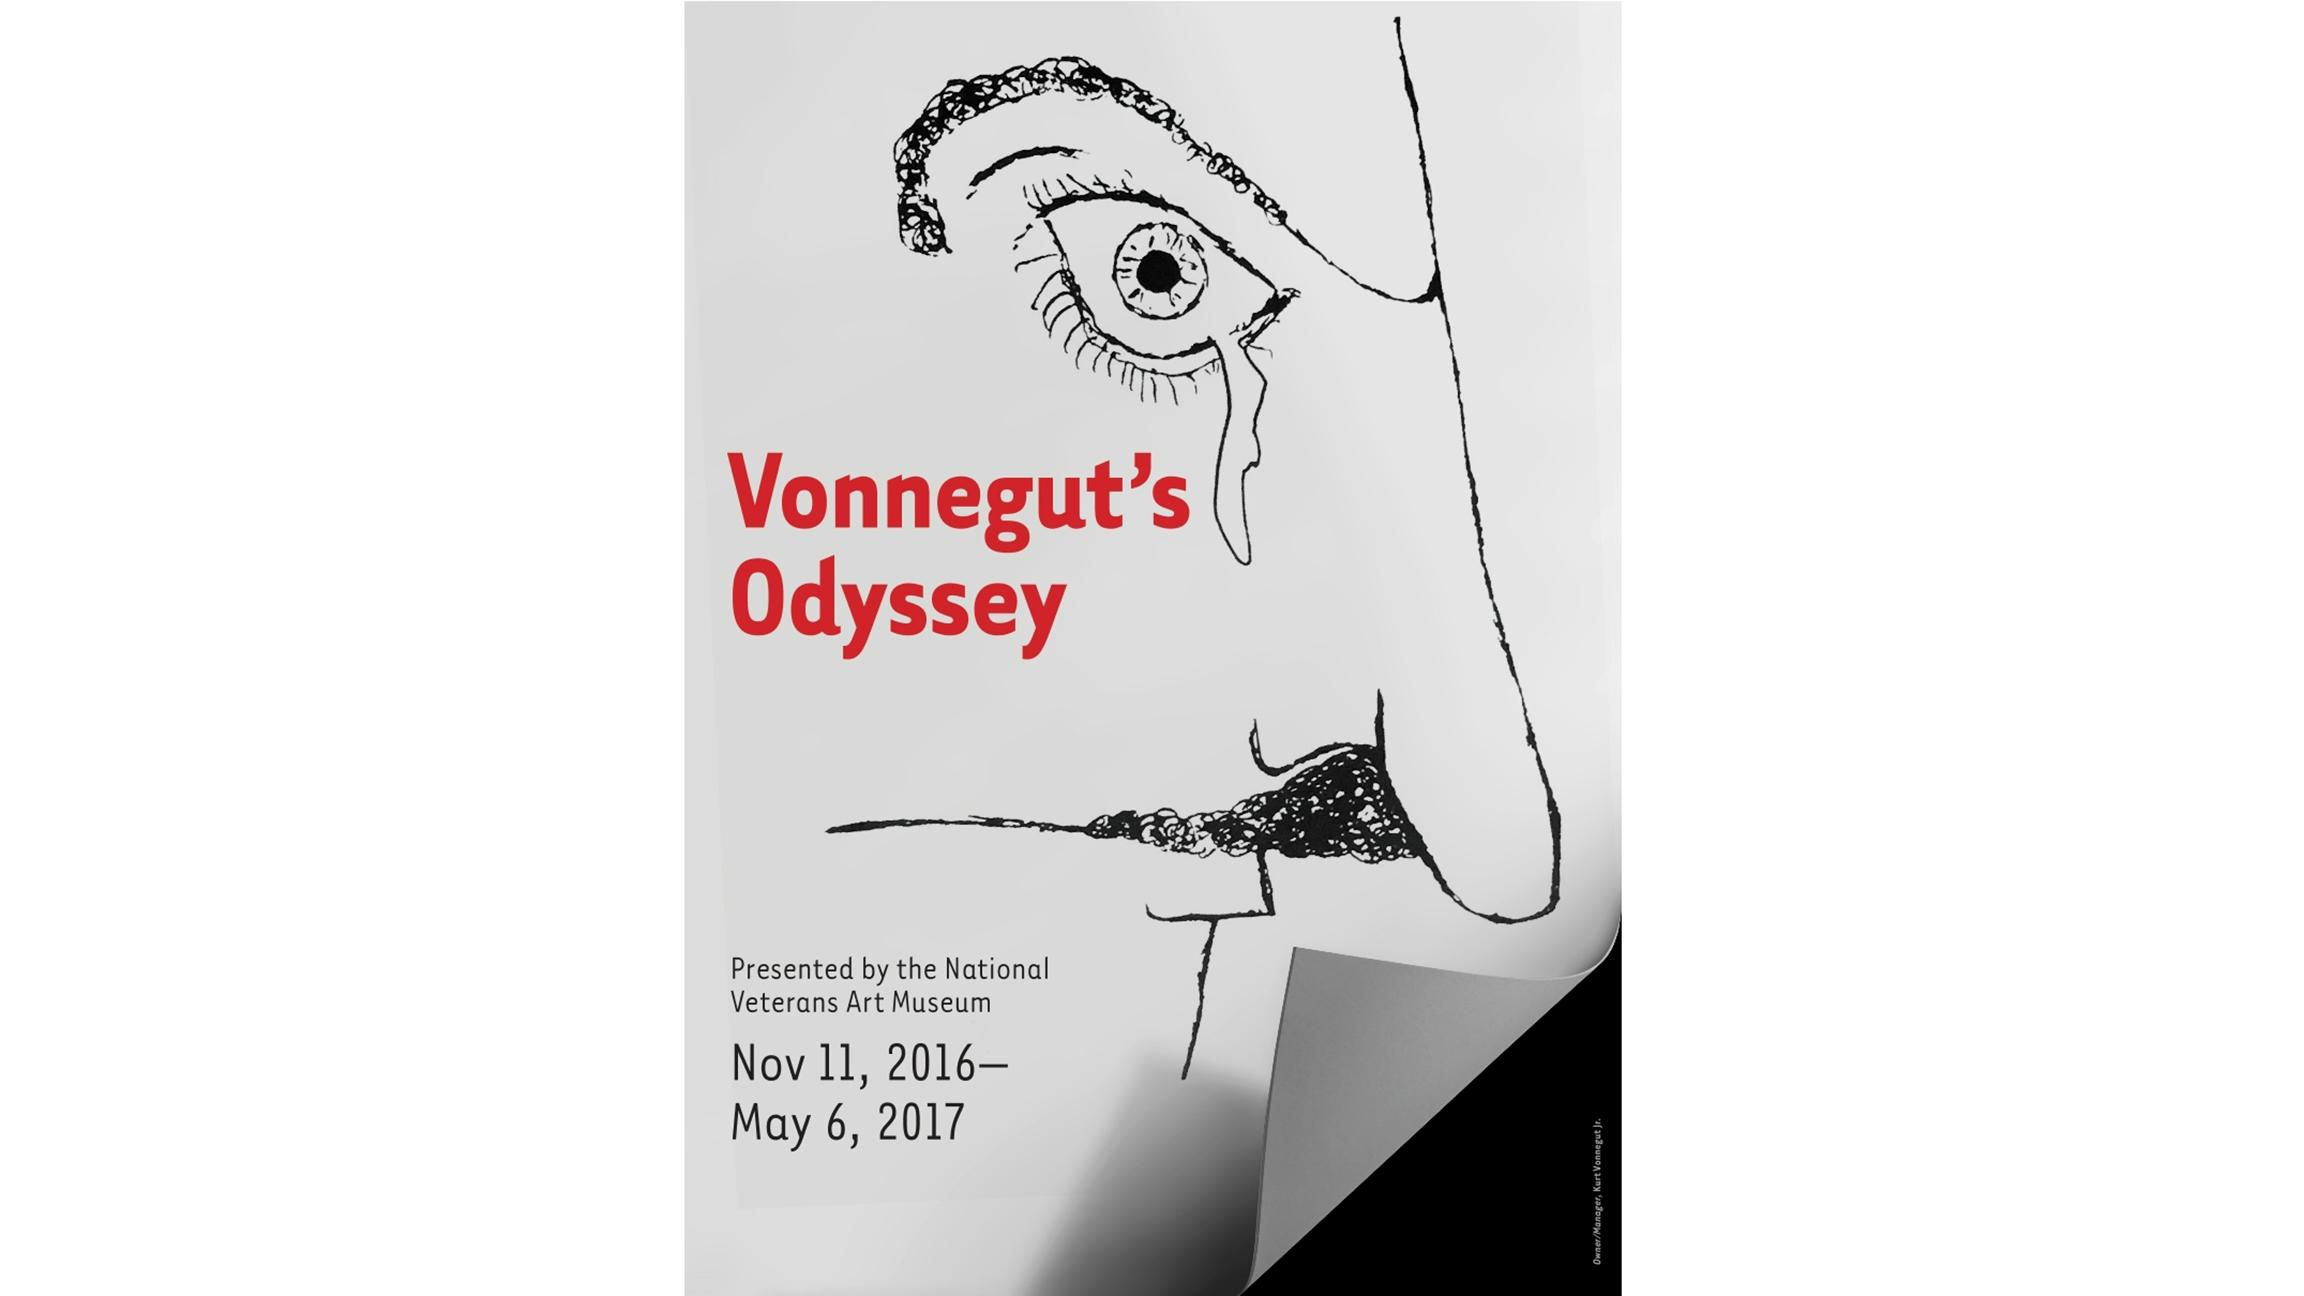 Kurt Vonnegut's drawings are on display starting Friday at the National Veterans Art Museum.